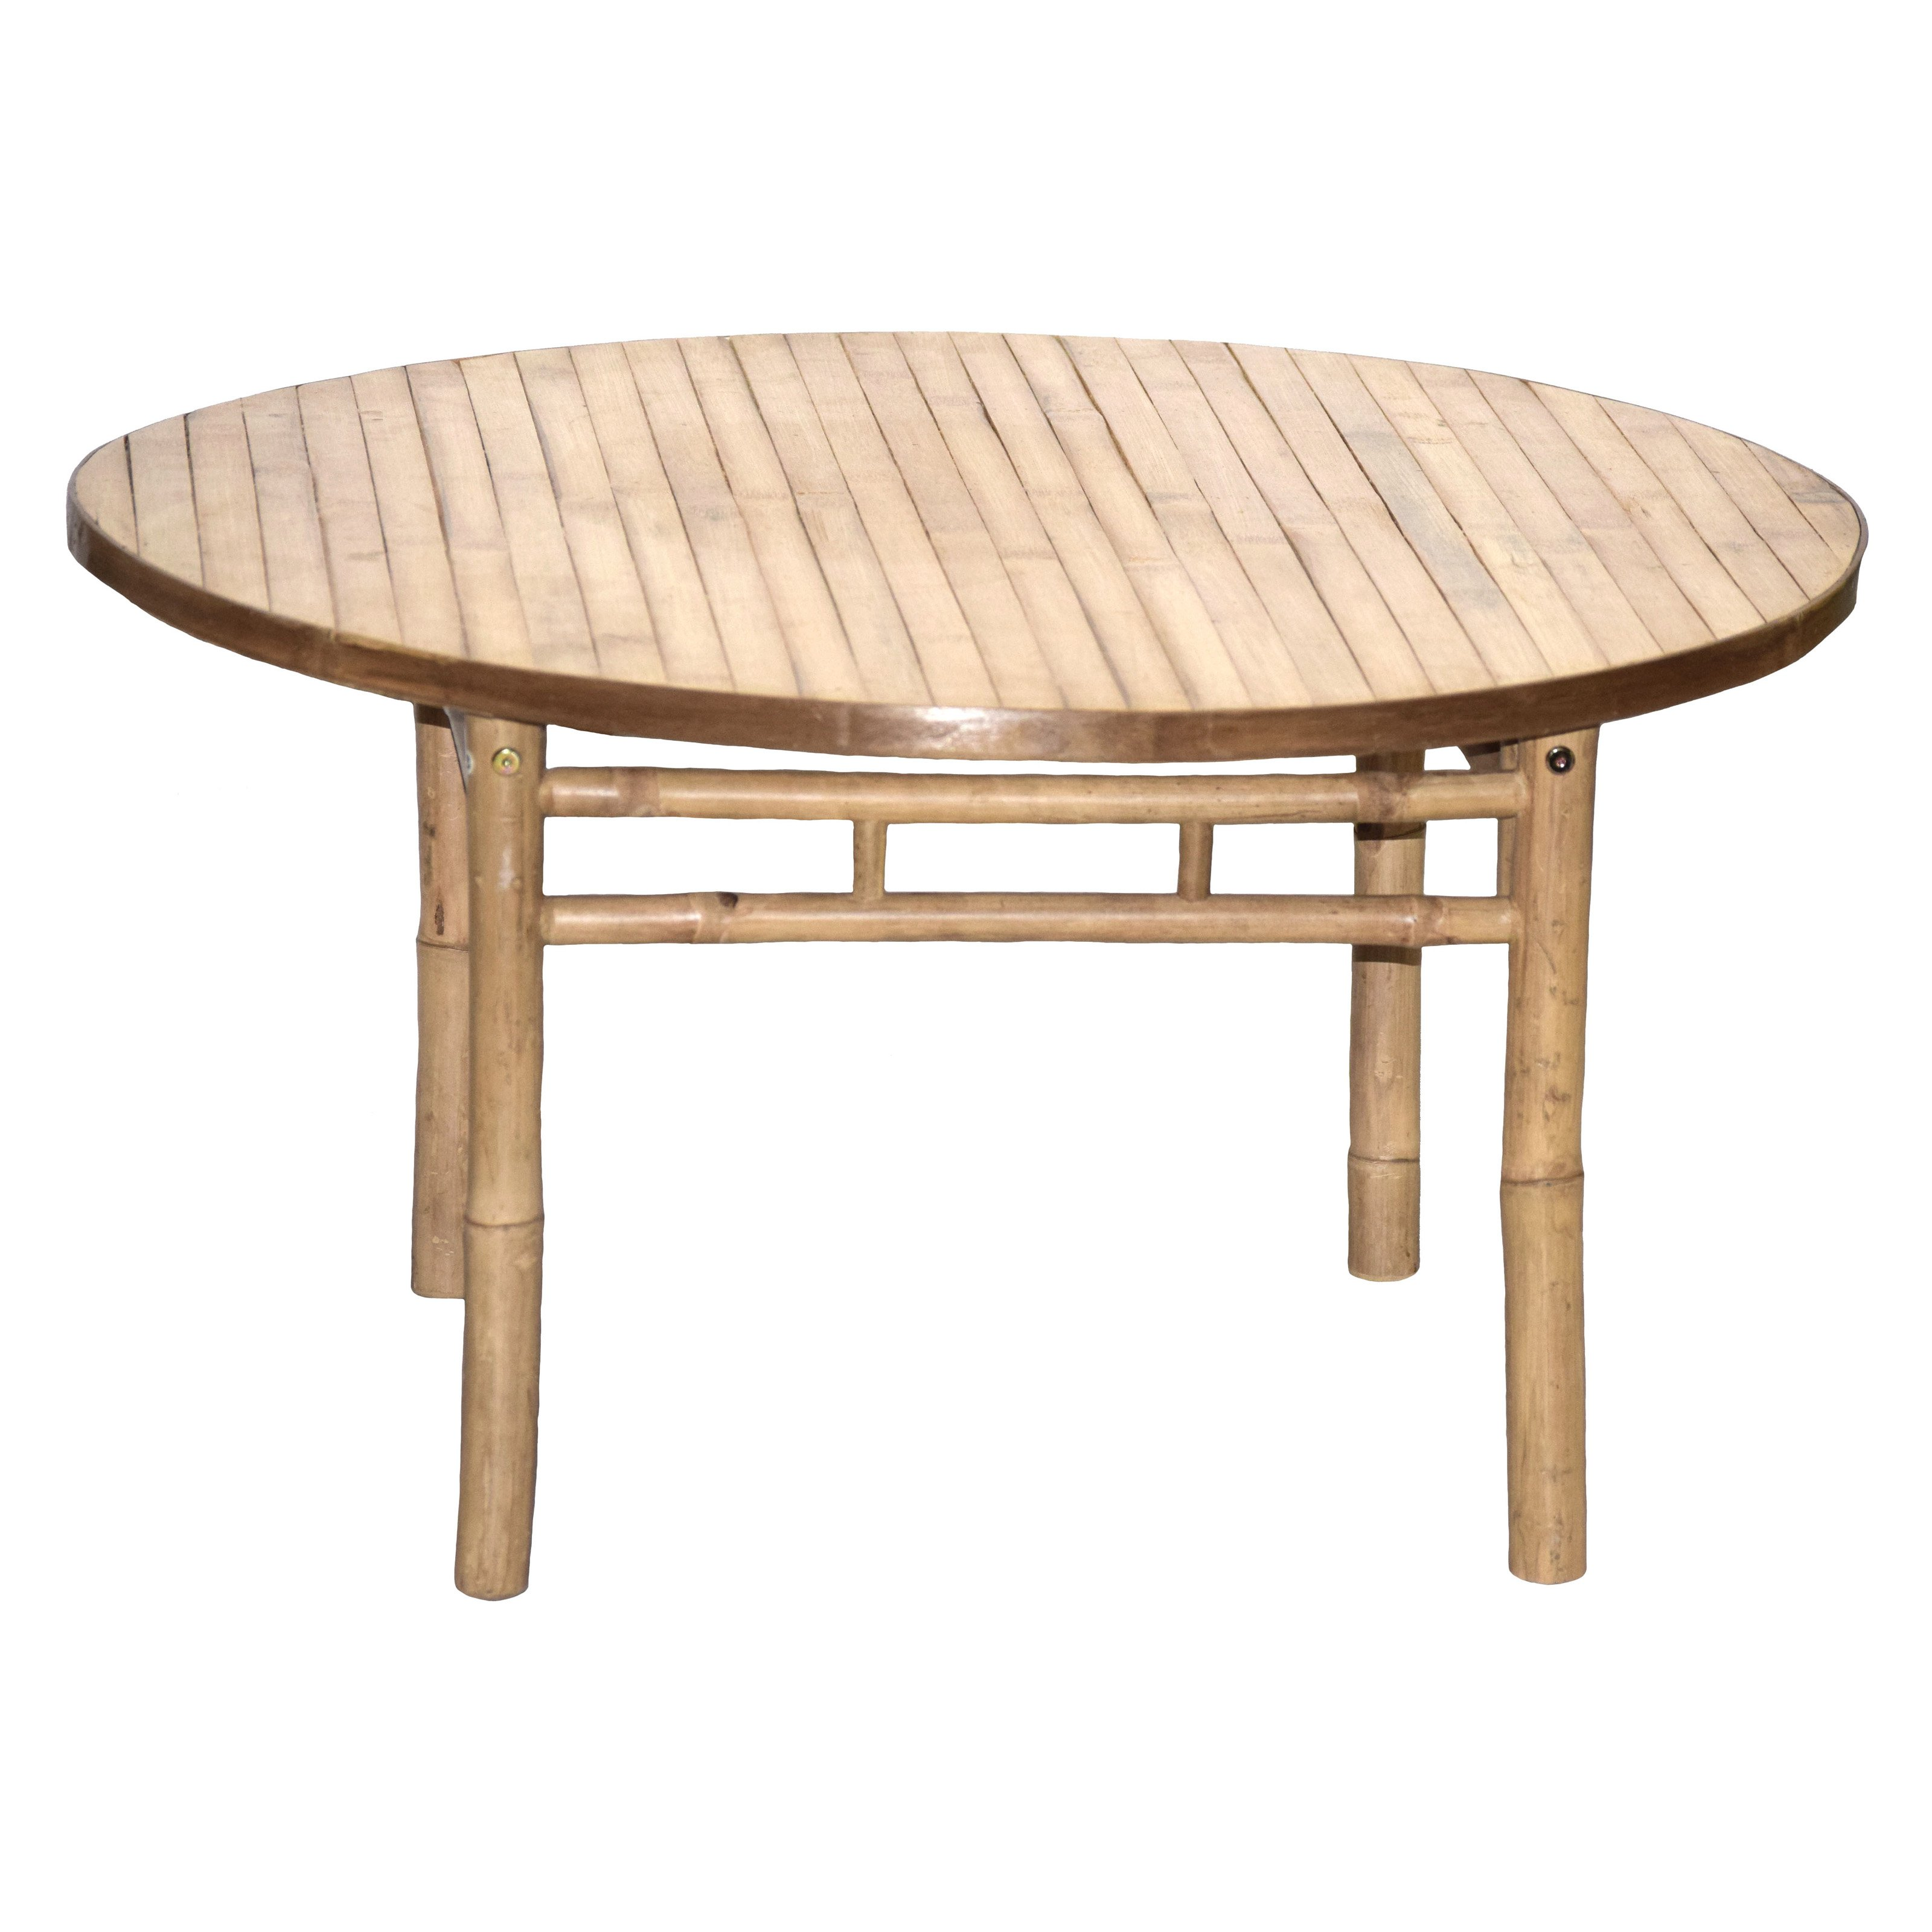 Bamboo54 KD Round Patio Dining Table